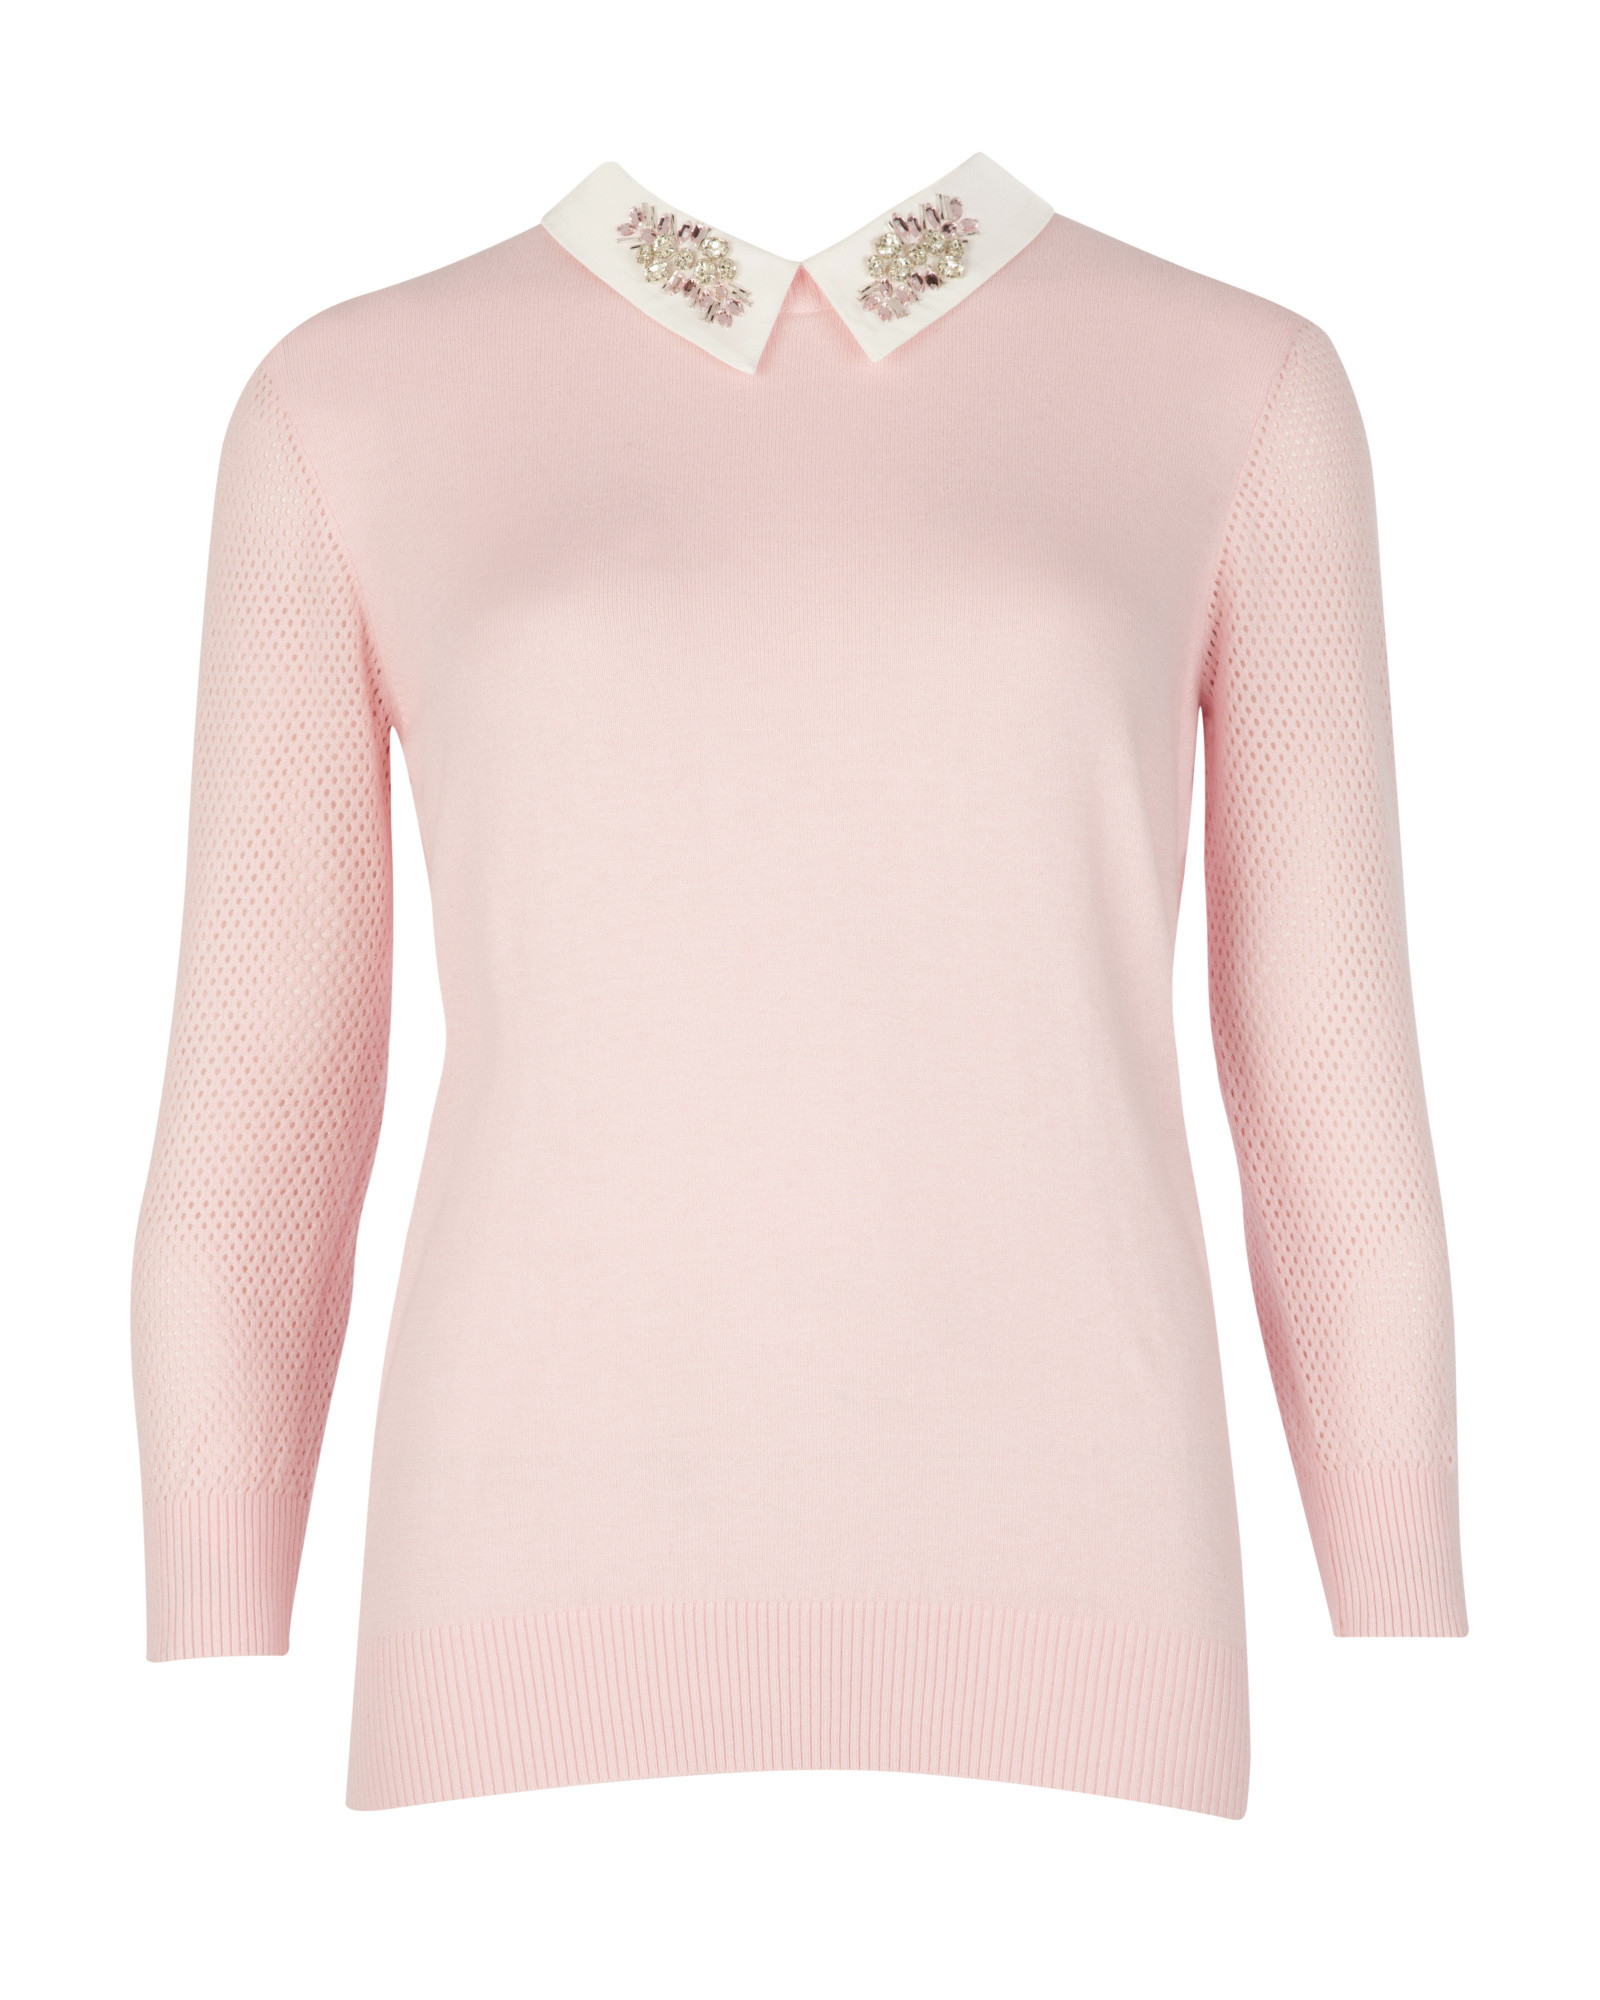 Ted baker Embellished Collar Sweater in Pink | Lyst